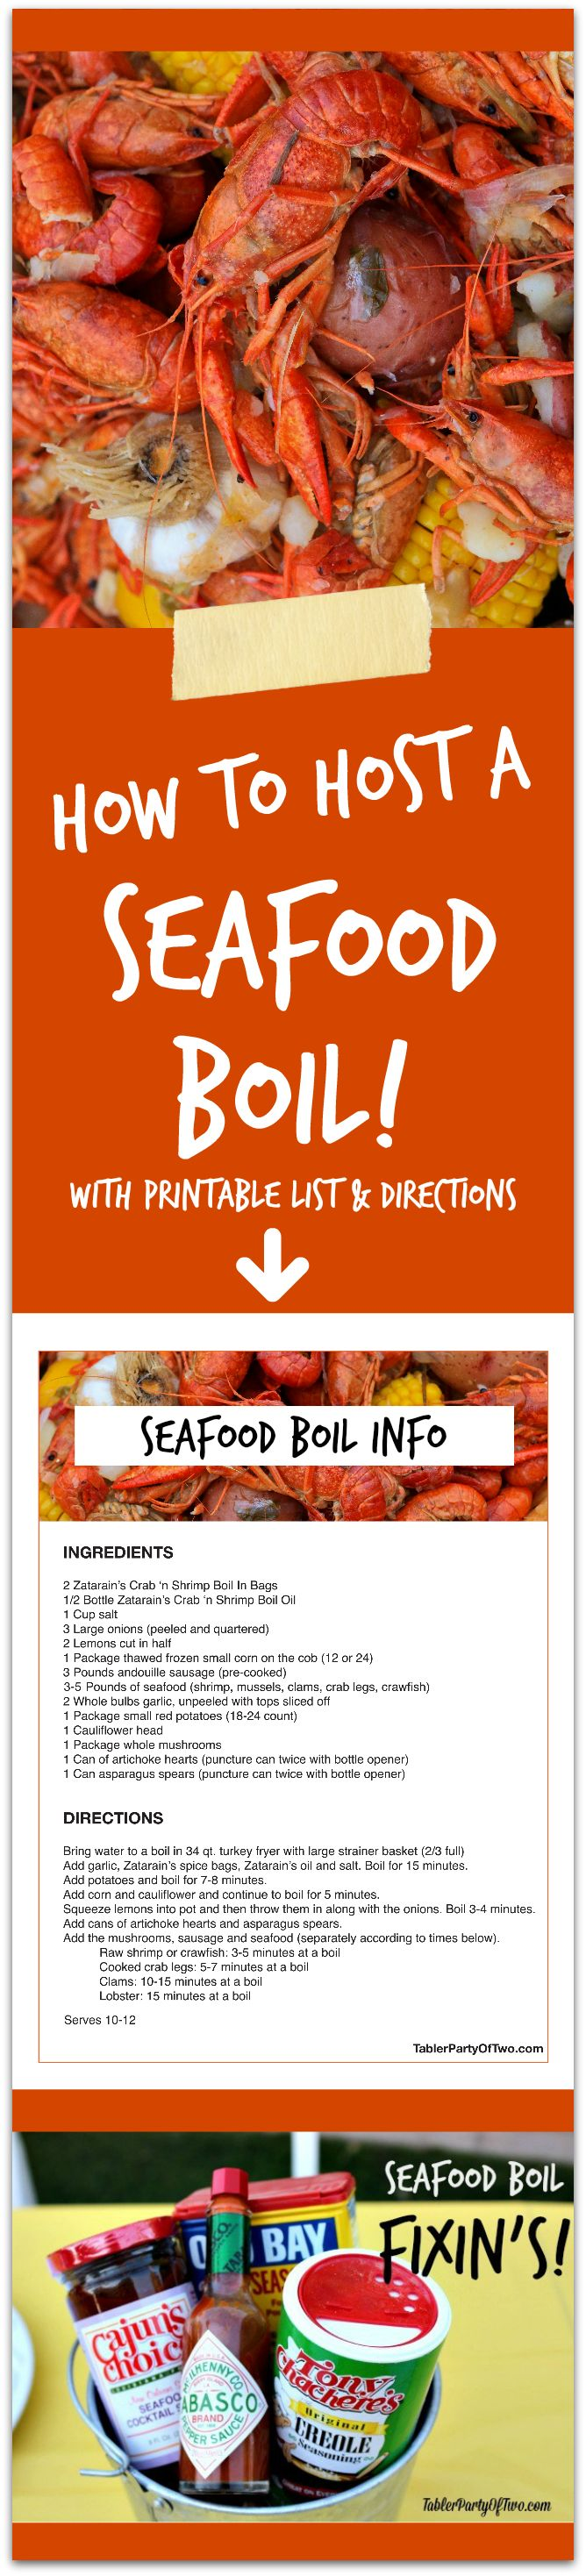 How to Host a Seafood Boil - EVERYTHING you need to know! This will be the MOST FUN summer party you ever threw! Click to get your FREE printable list and directions.